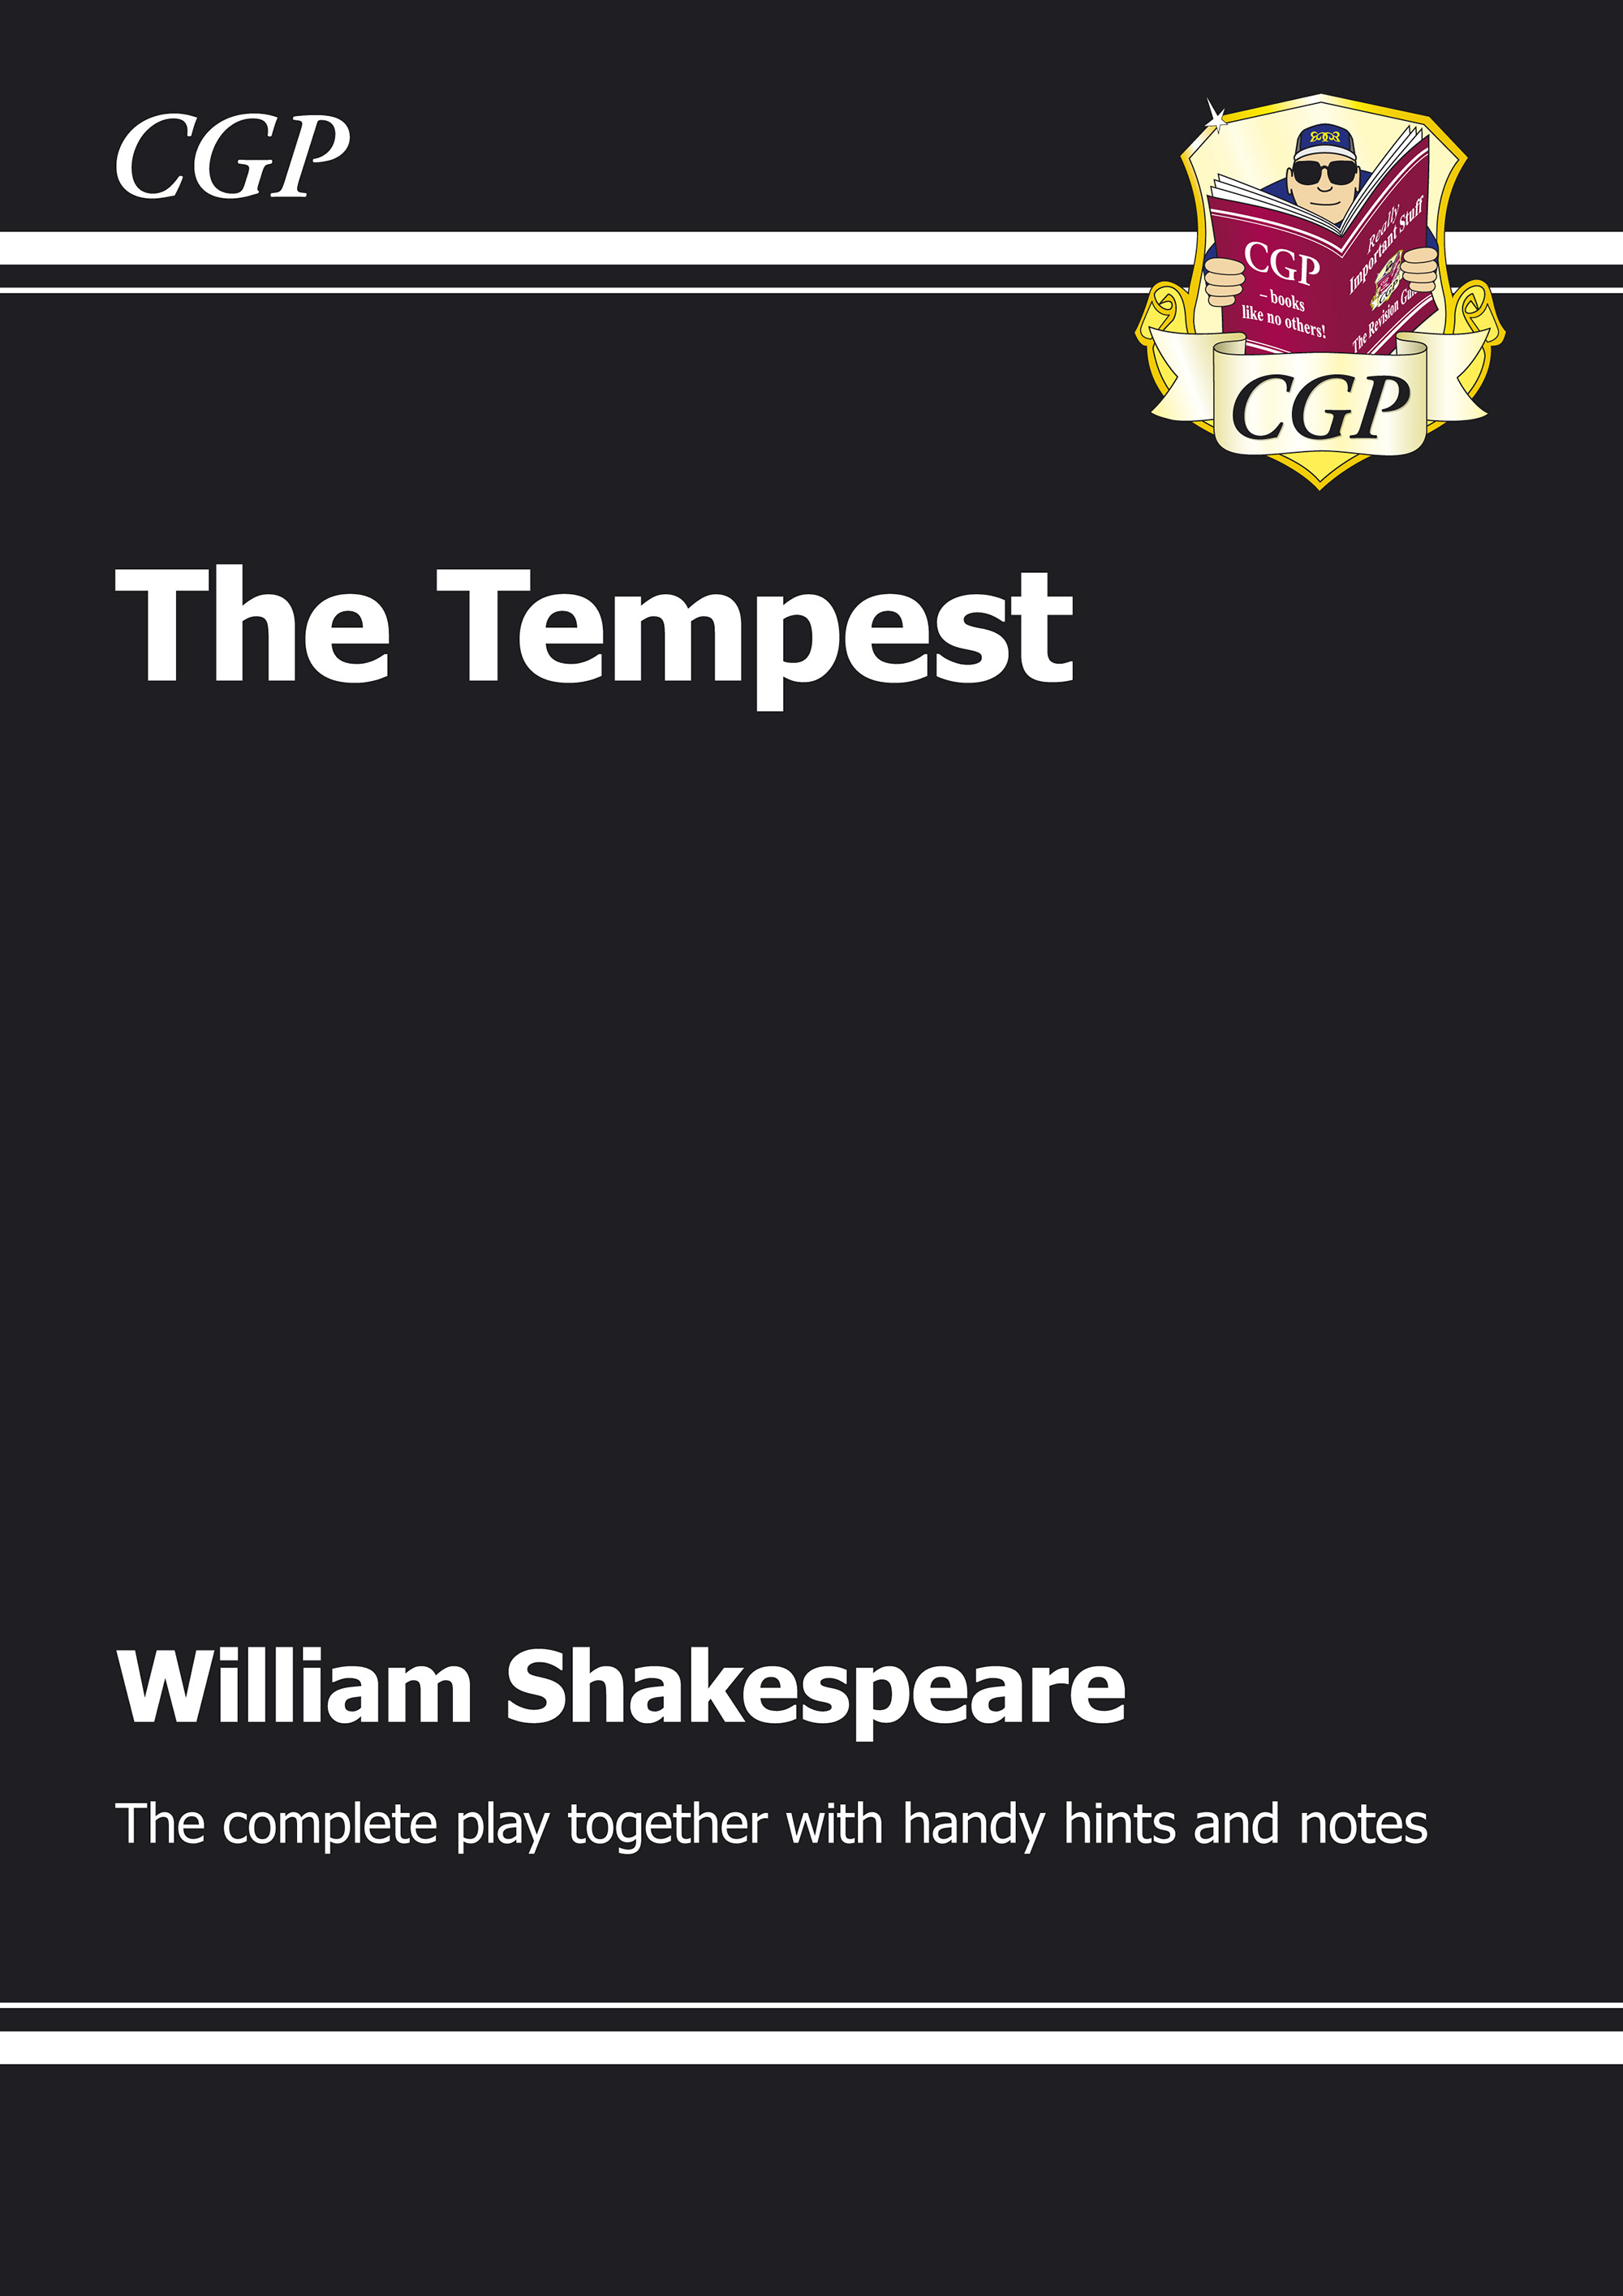 EPTT42 - KS3 English Shakespeare The Tempest Complete Play (with notes)